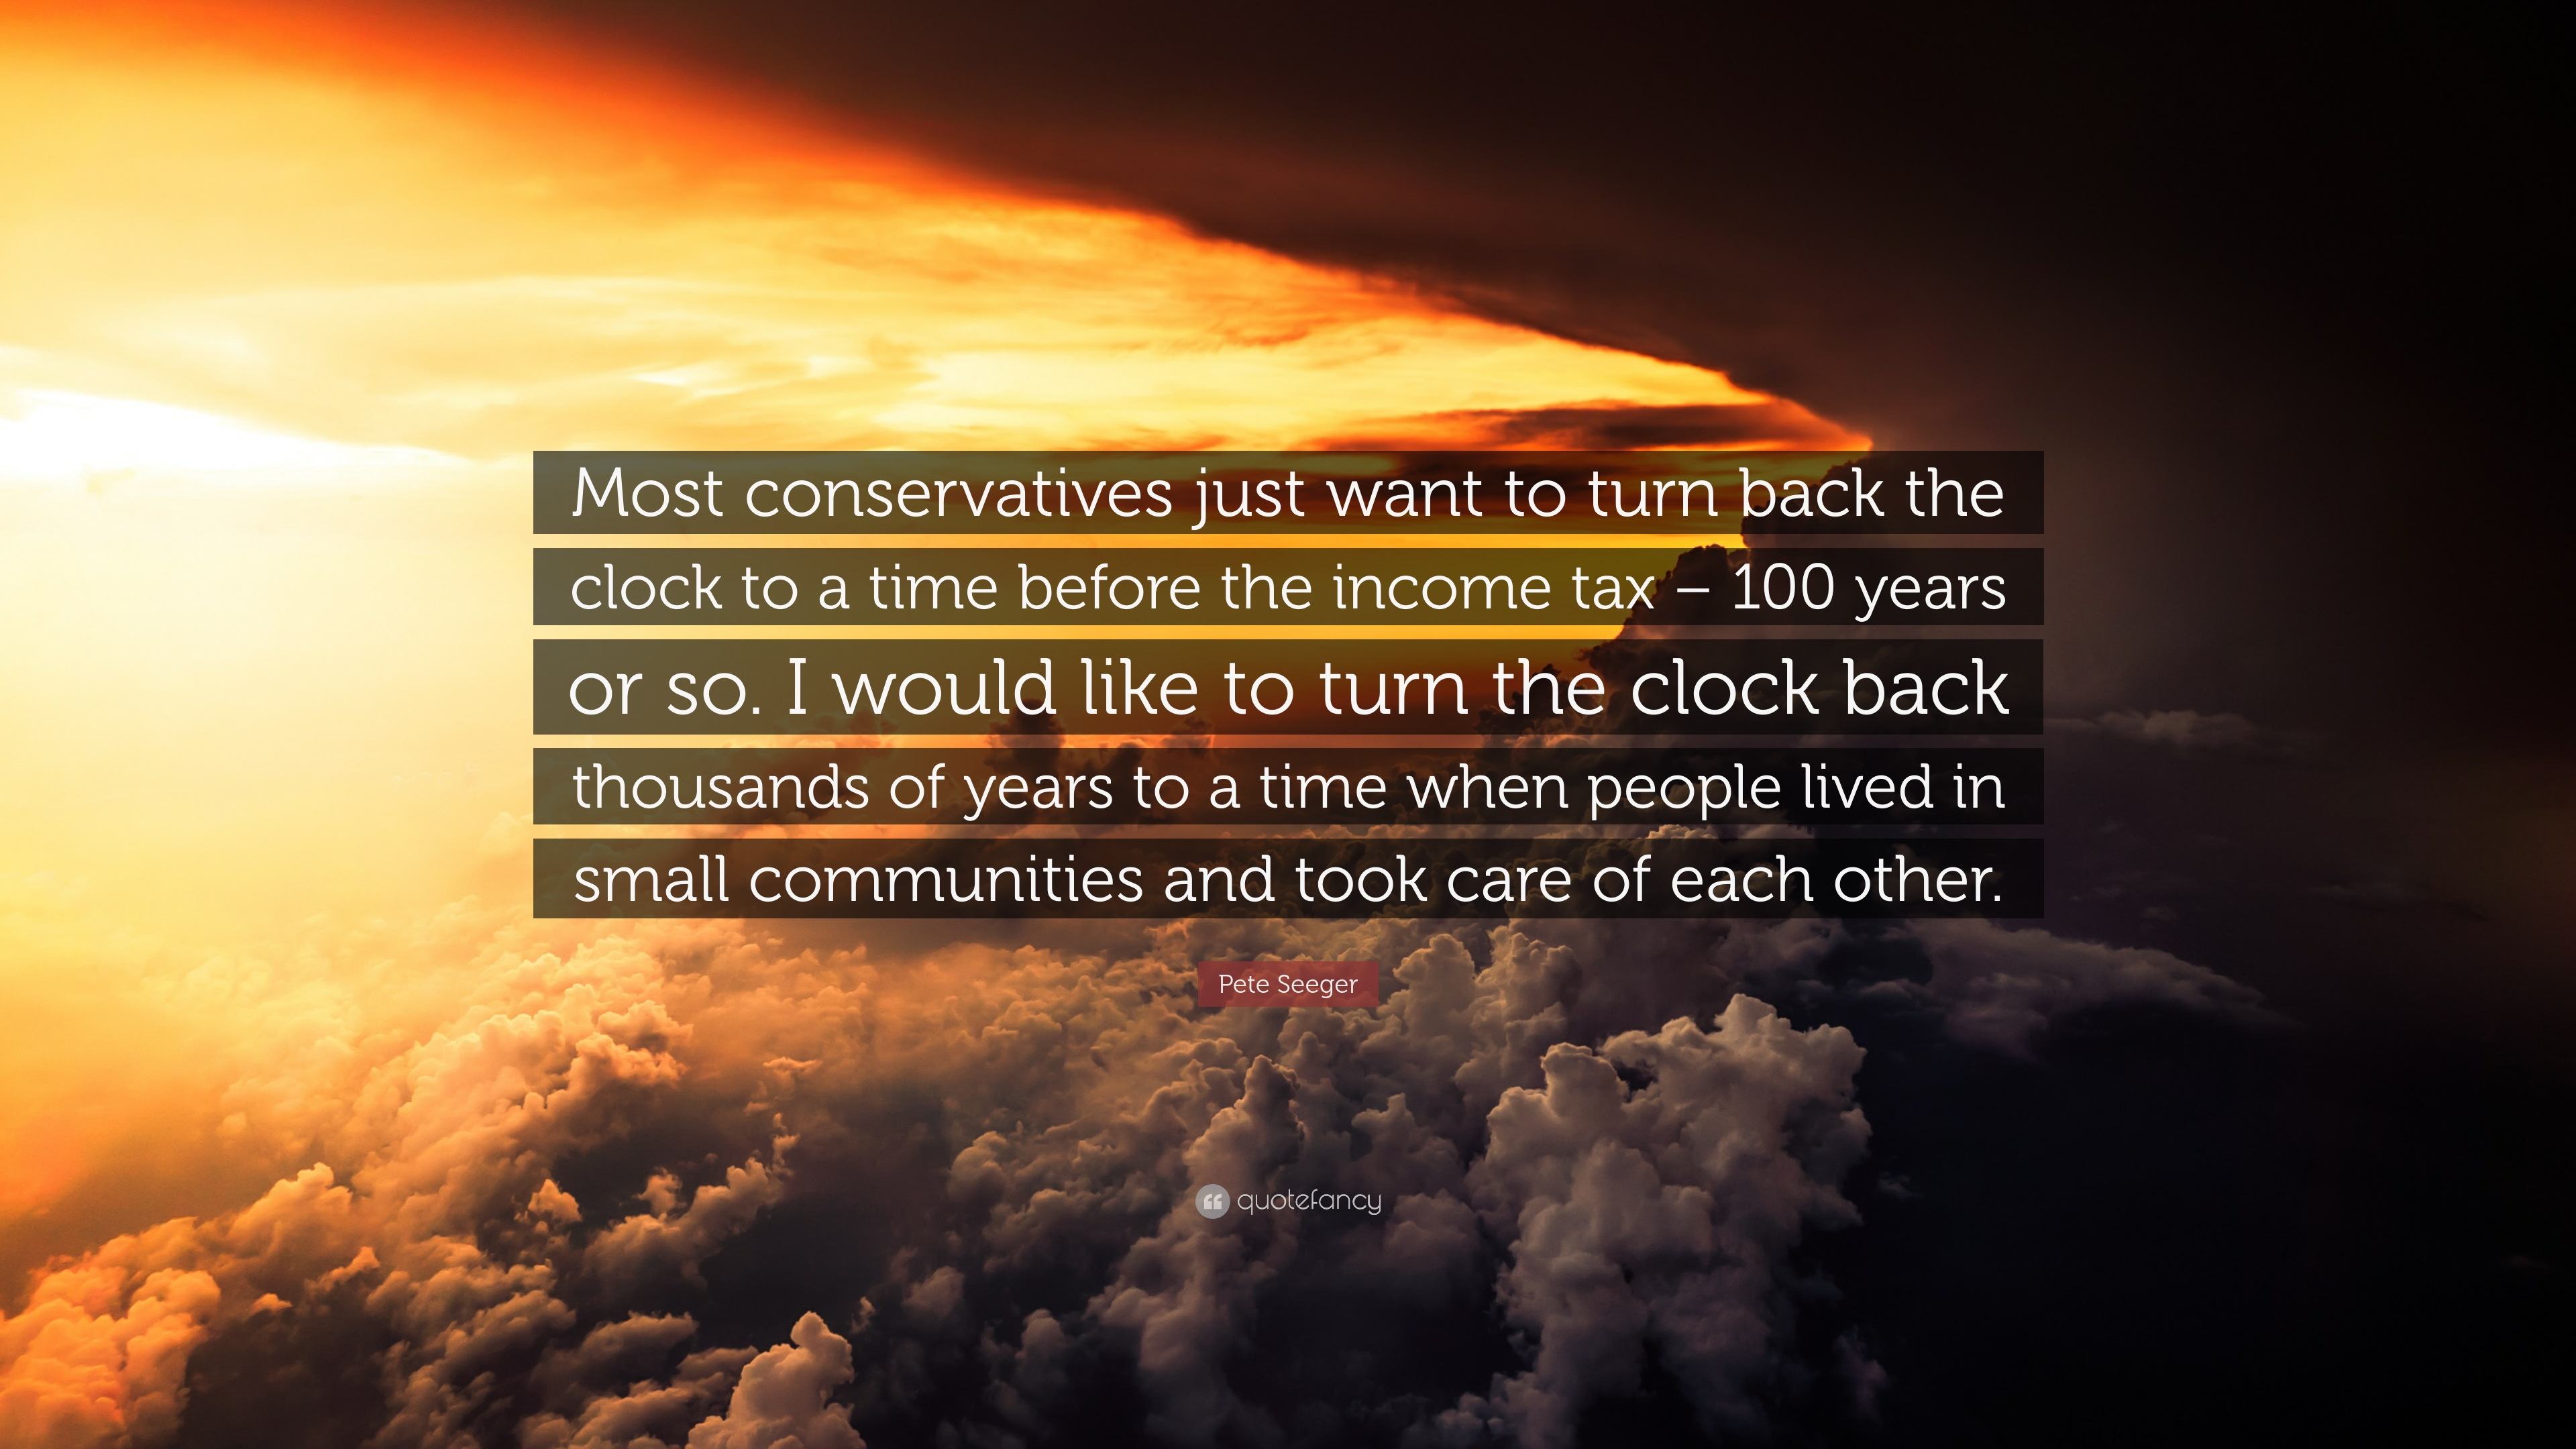 pete seeger quote most conservatives just want to turn back the